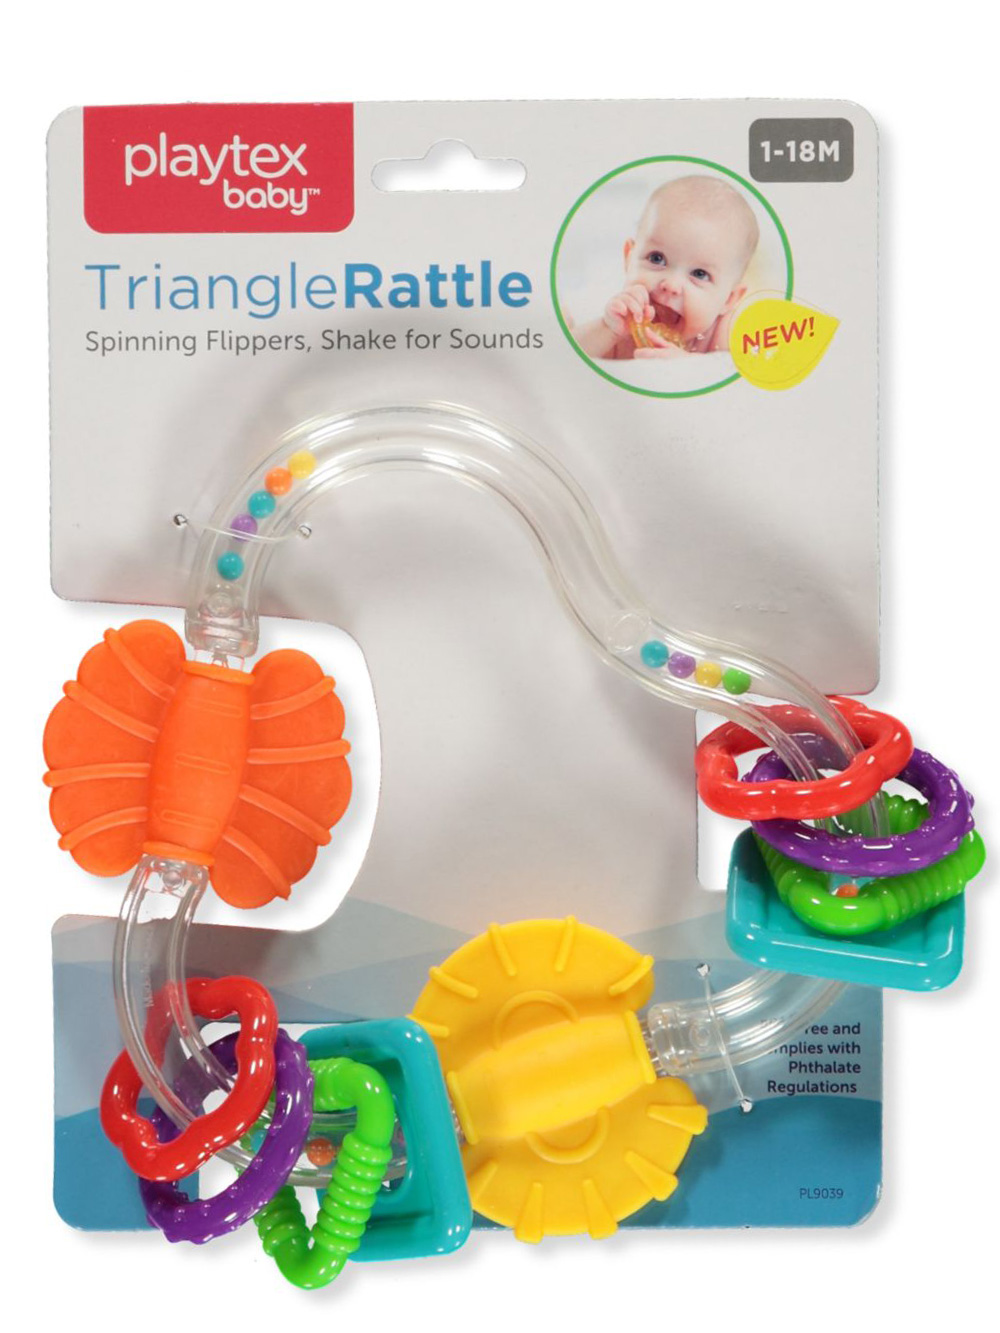 Playtex Teethers and Rattles